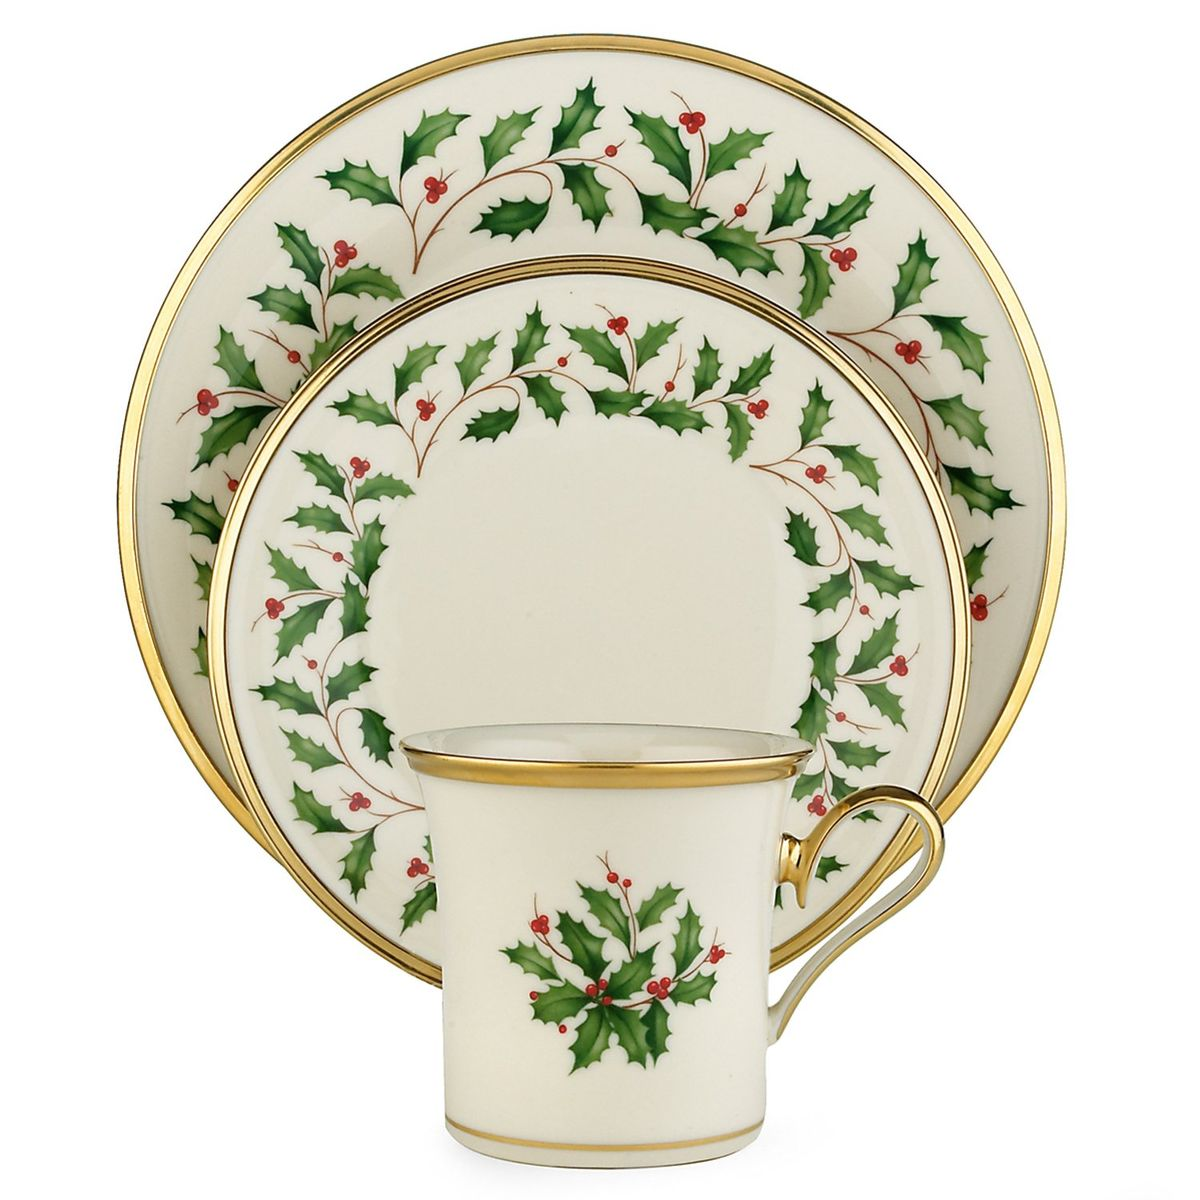 Best-Rated Christmas Holiday Dinnerware Sets On Sale - Reviews And Ratings | A Listly List  sc 1 st  Listly & Best-Rated Christmas Holiday Dinnerware Sets On Sale - Reviews And ...